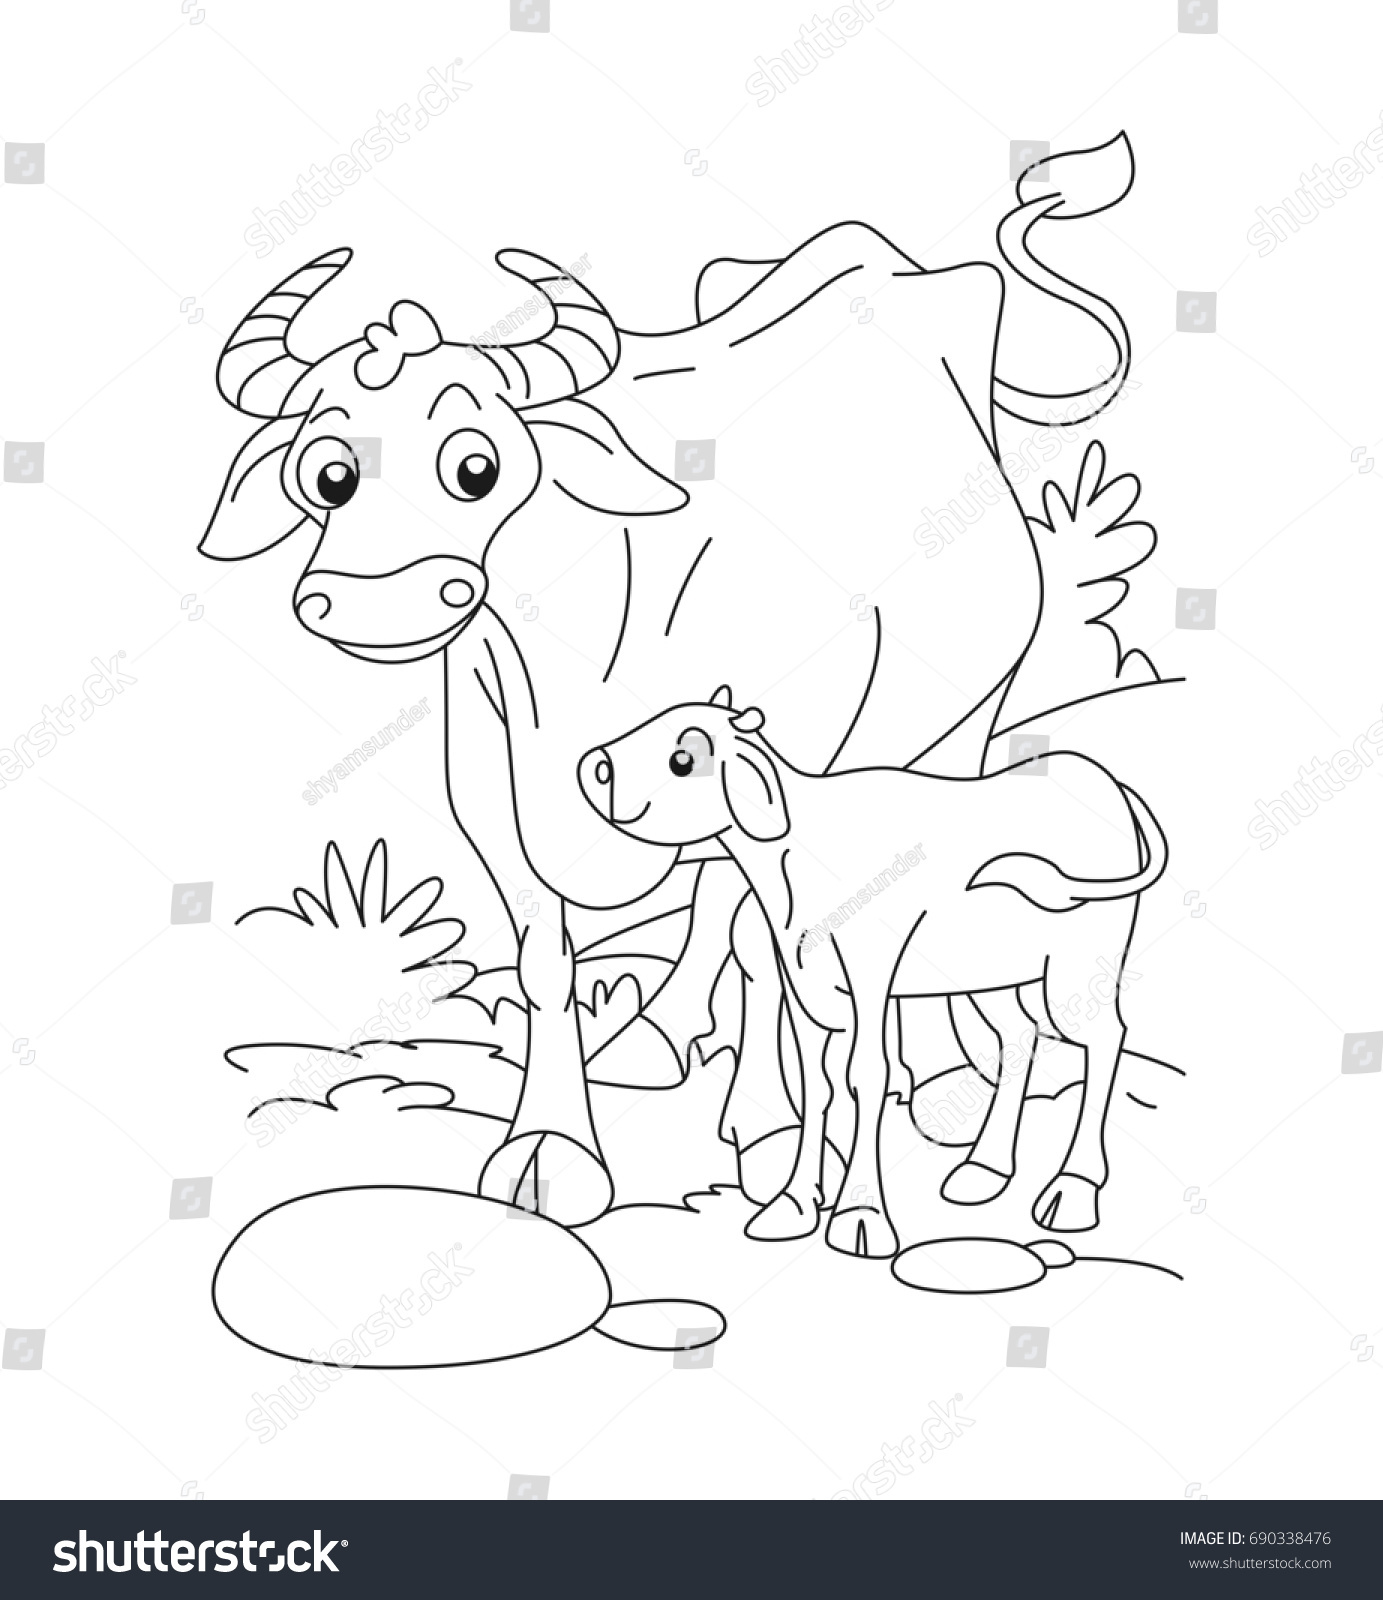 Cow Calf Coloring Page Stock Vector (Royalty Free) 690338476 ...